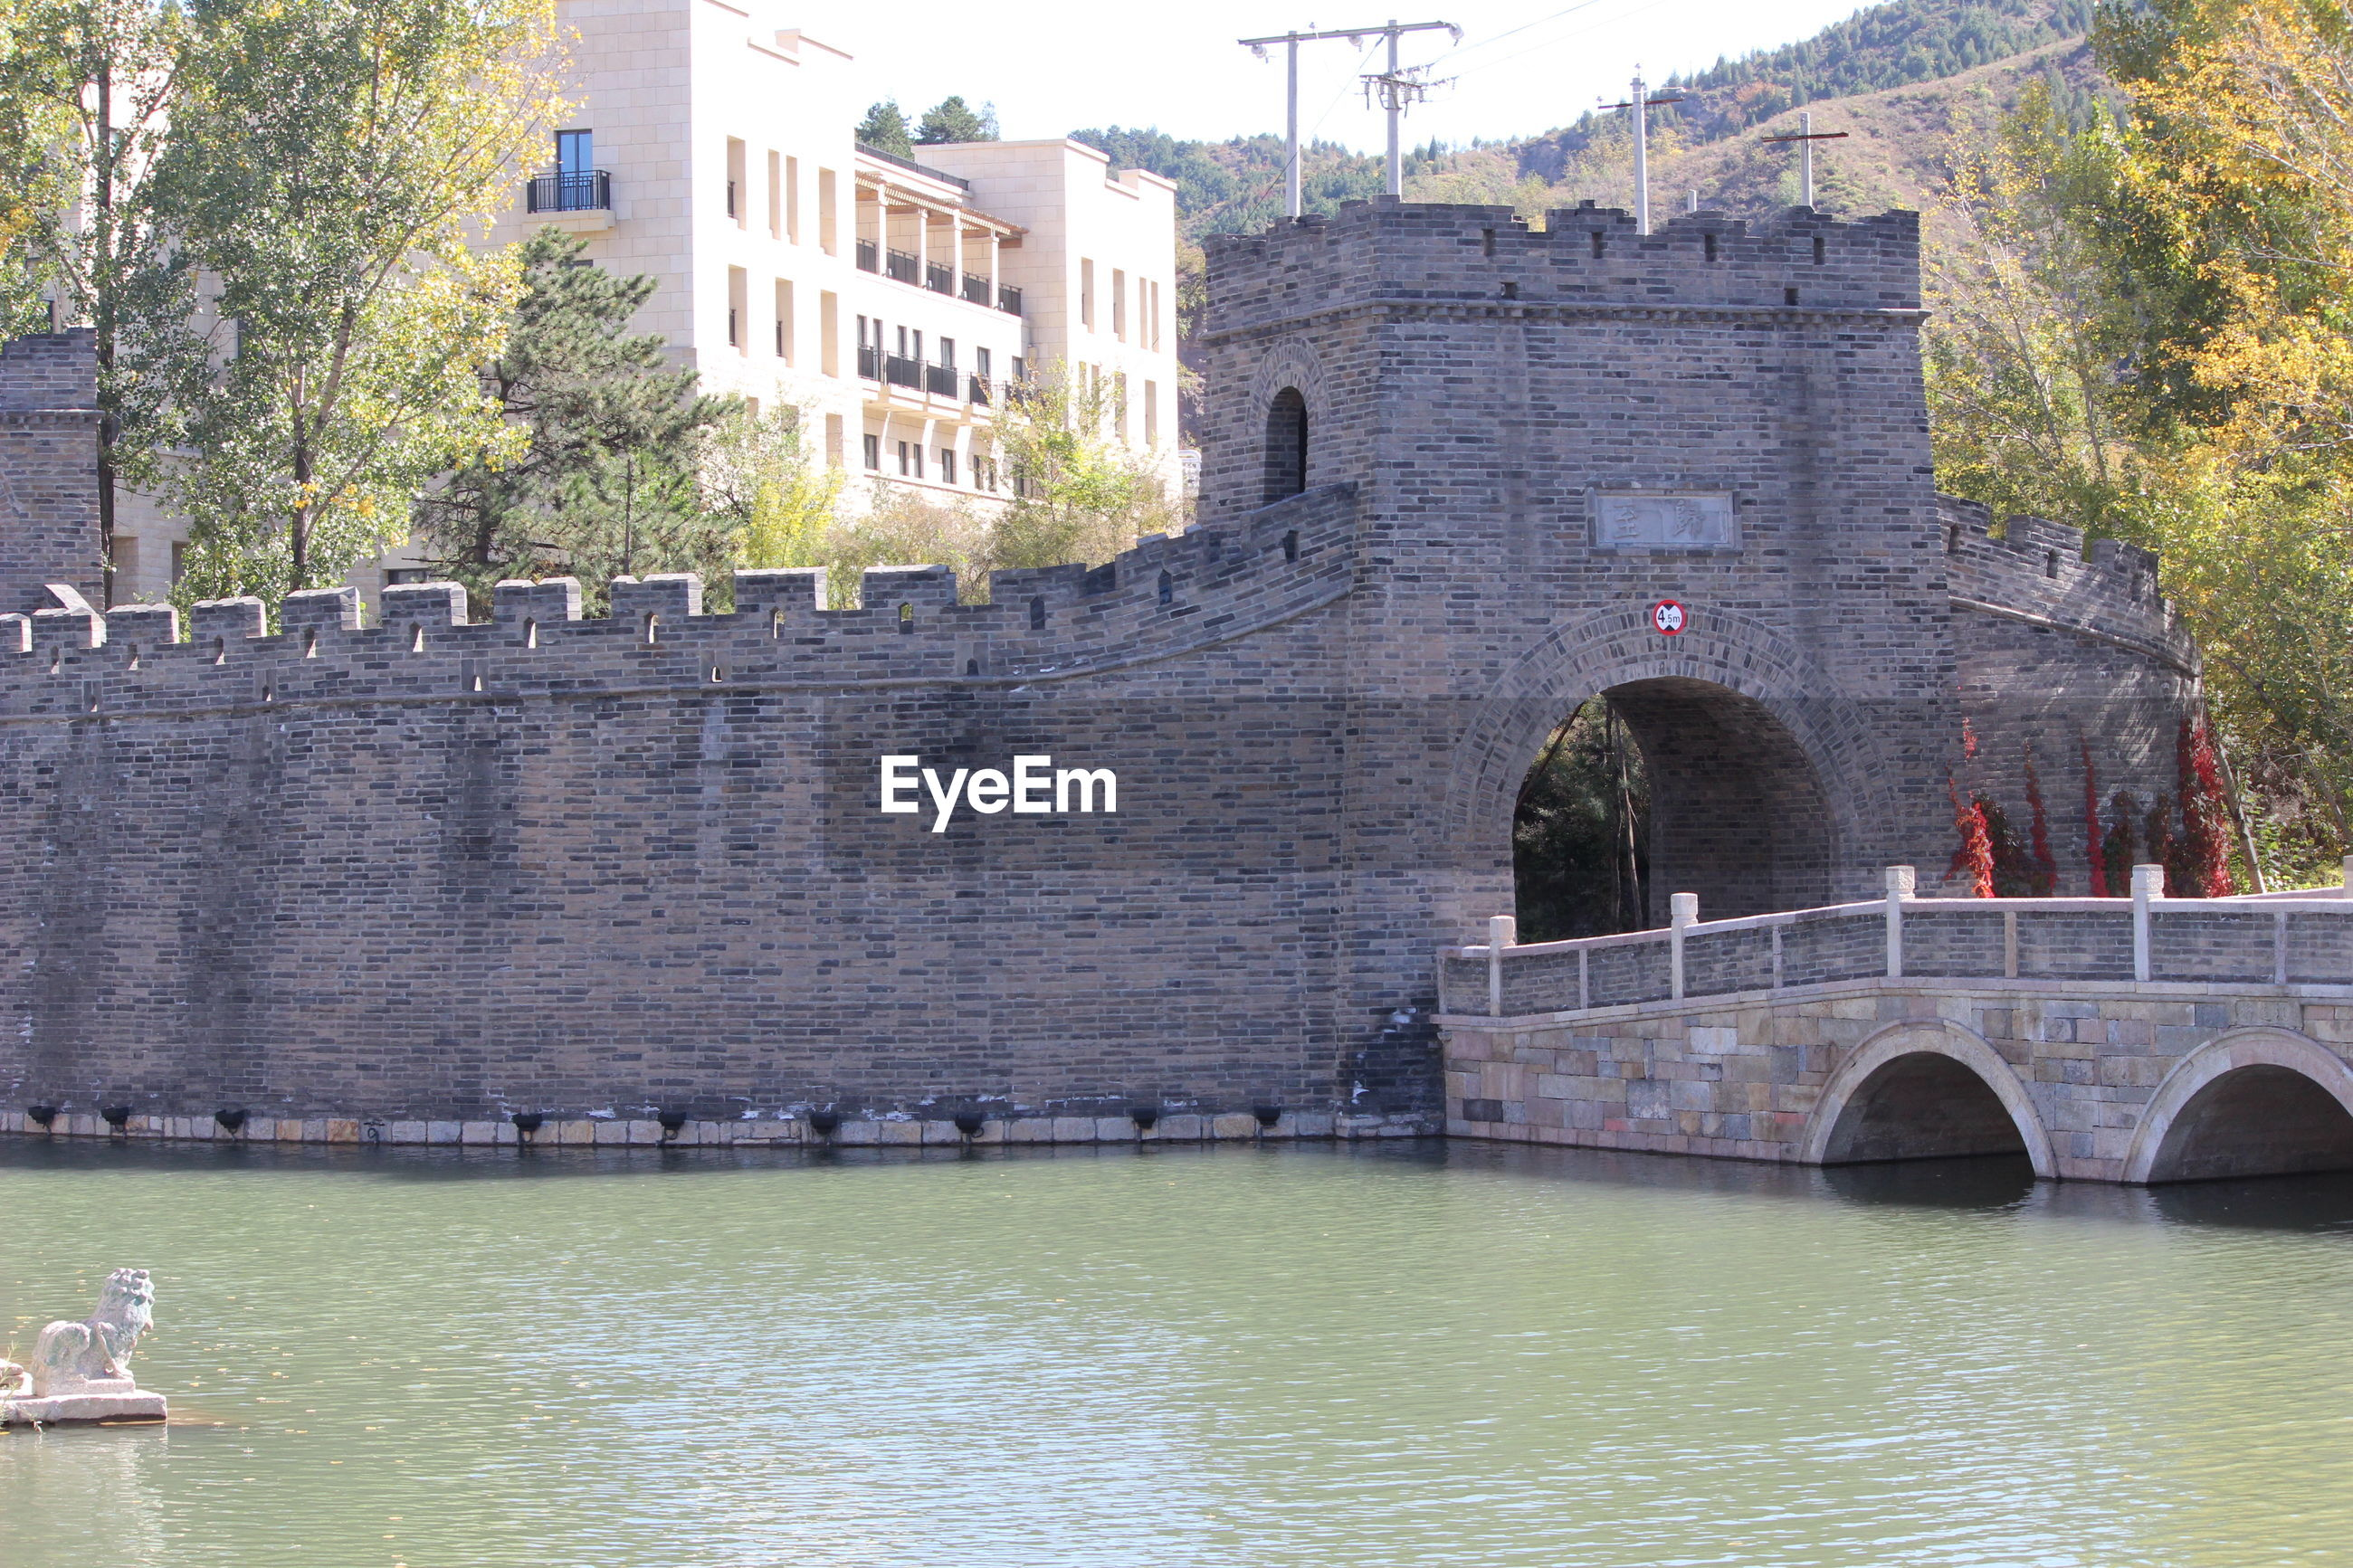 ARCH BRIDGE OVER RIVER BY BUILDINGS